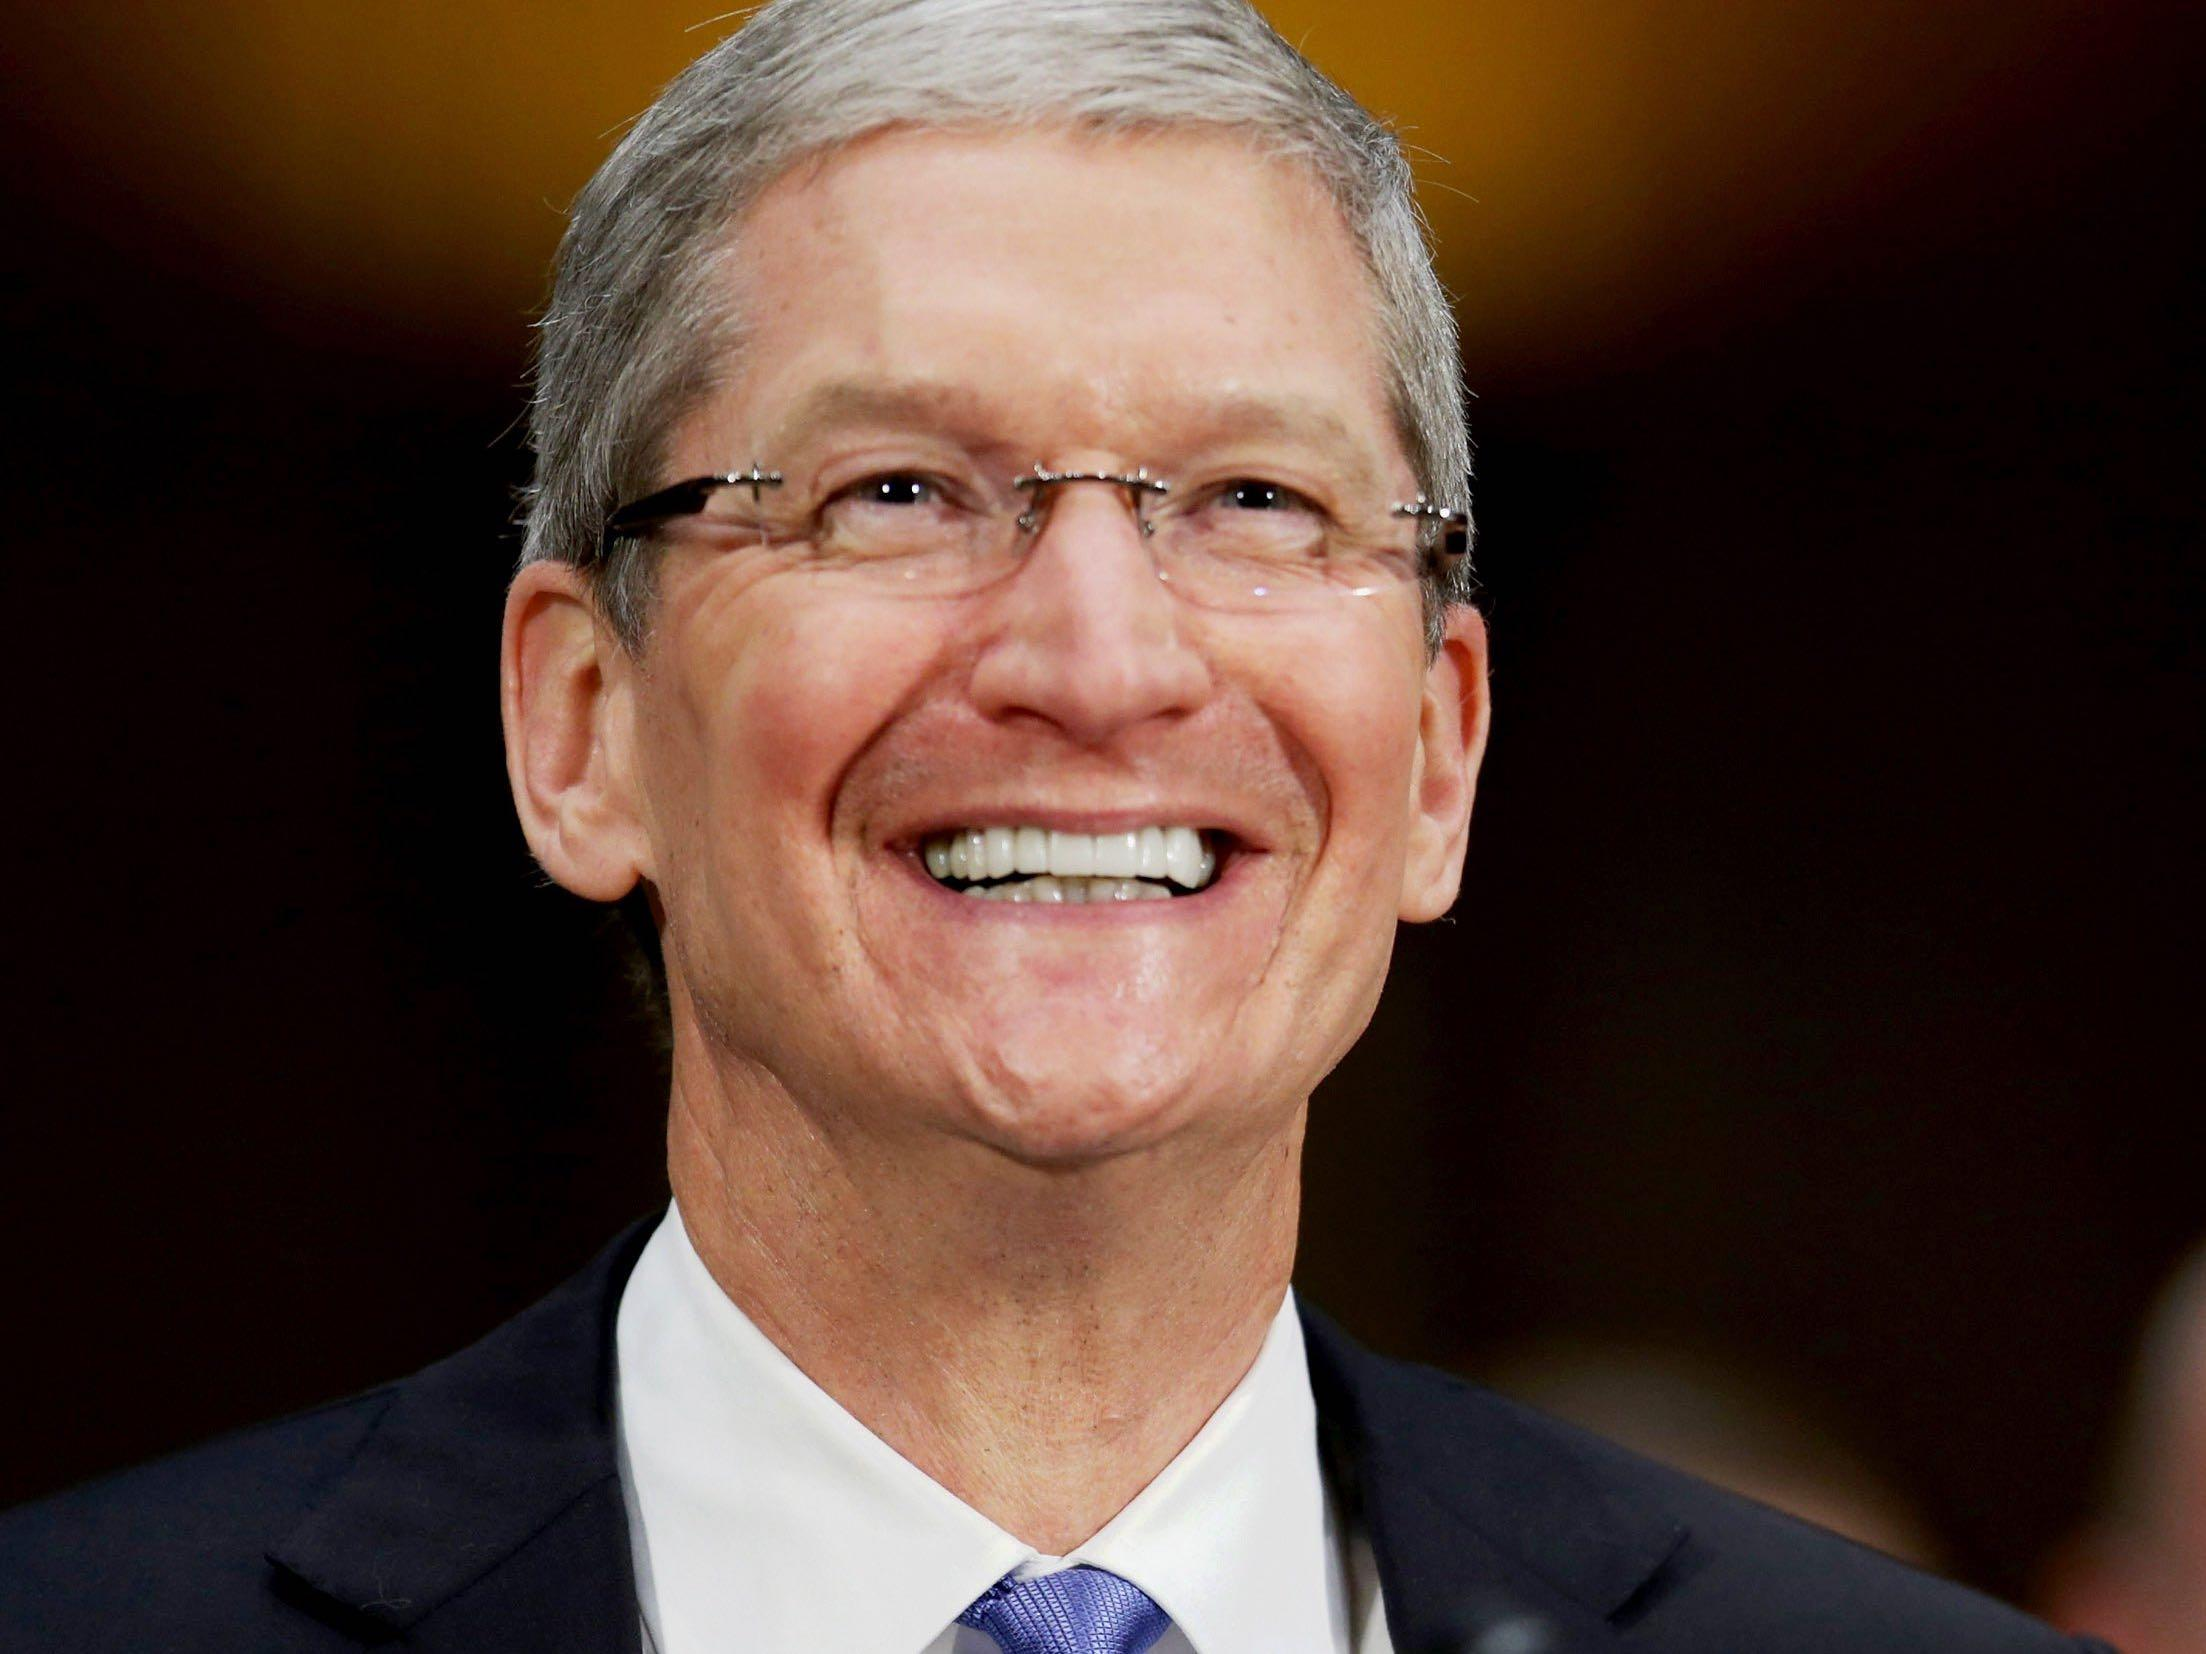 Tim Cook just made a funny joke about marriage in front of 20,000 Cisco employees